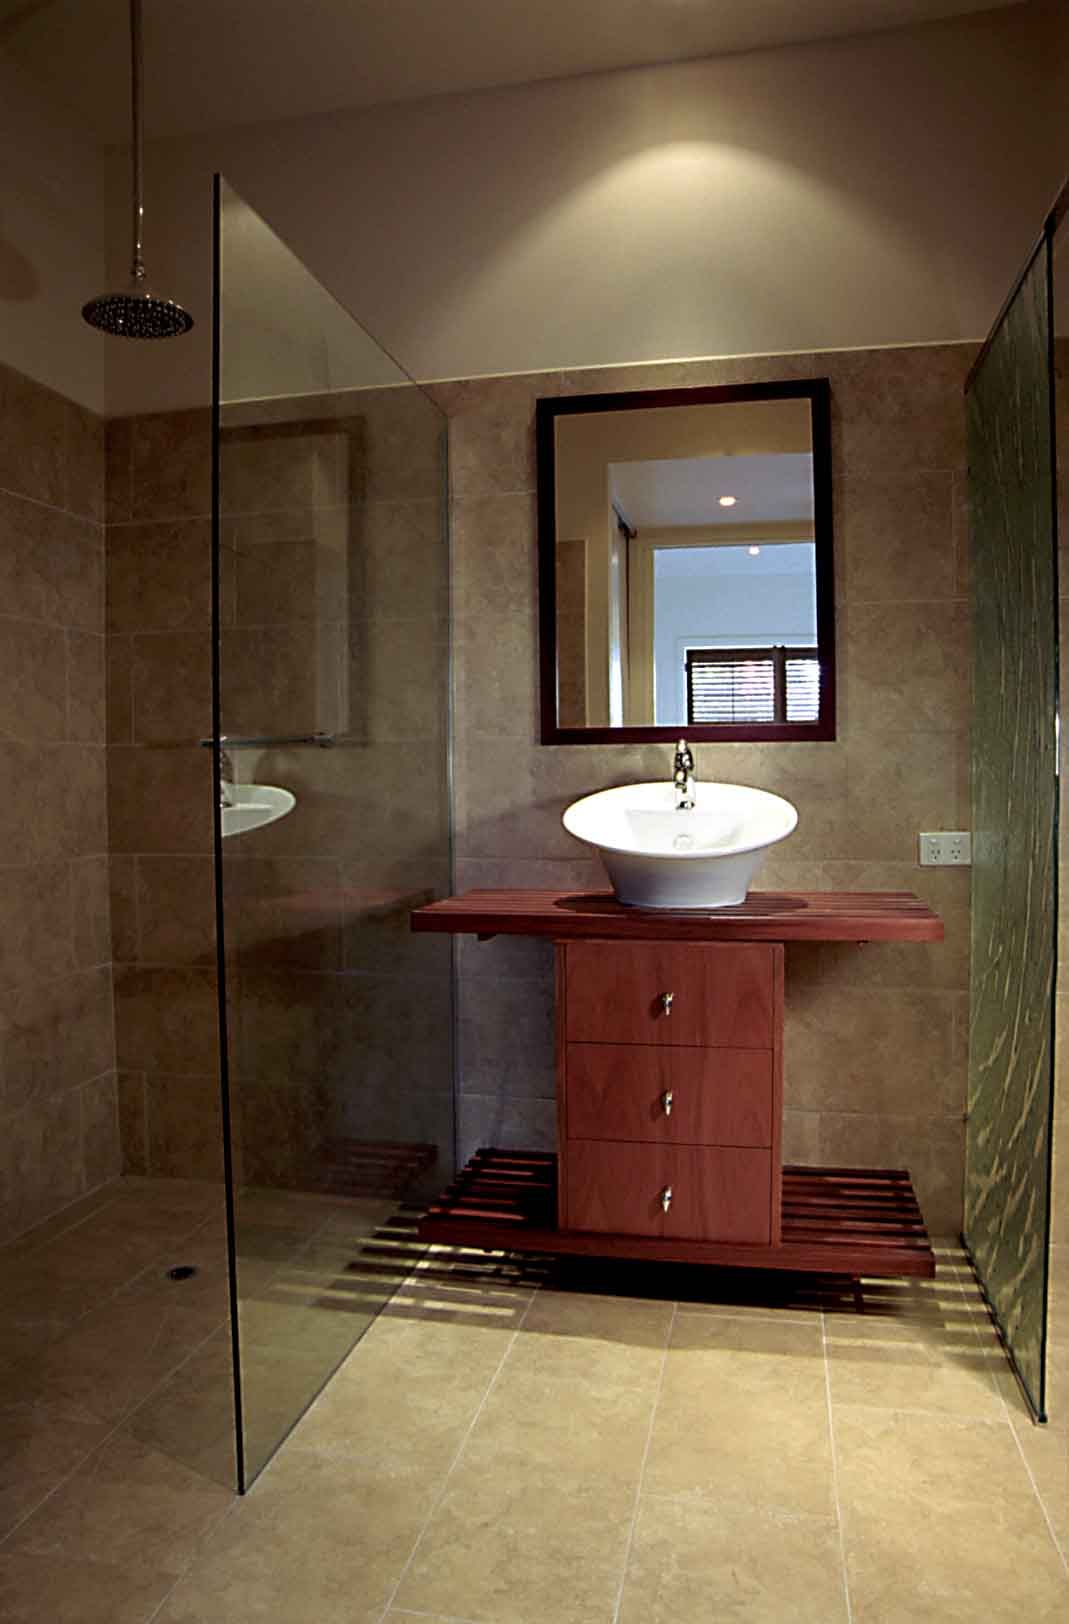 Wet room design for small bathrooms small ensuite for Bathroom room ideas